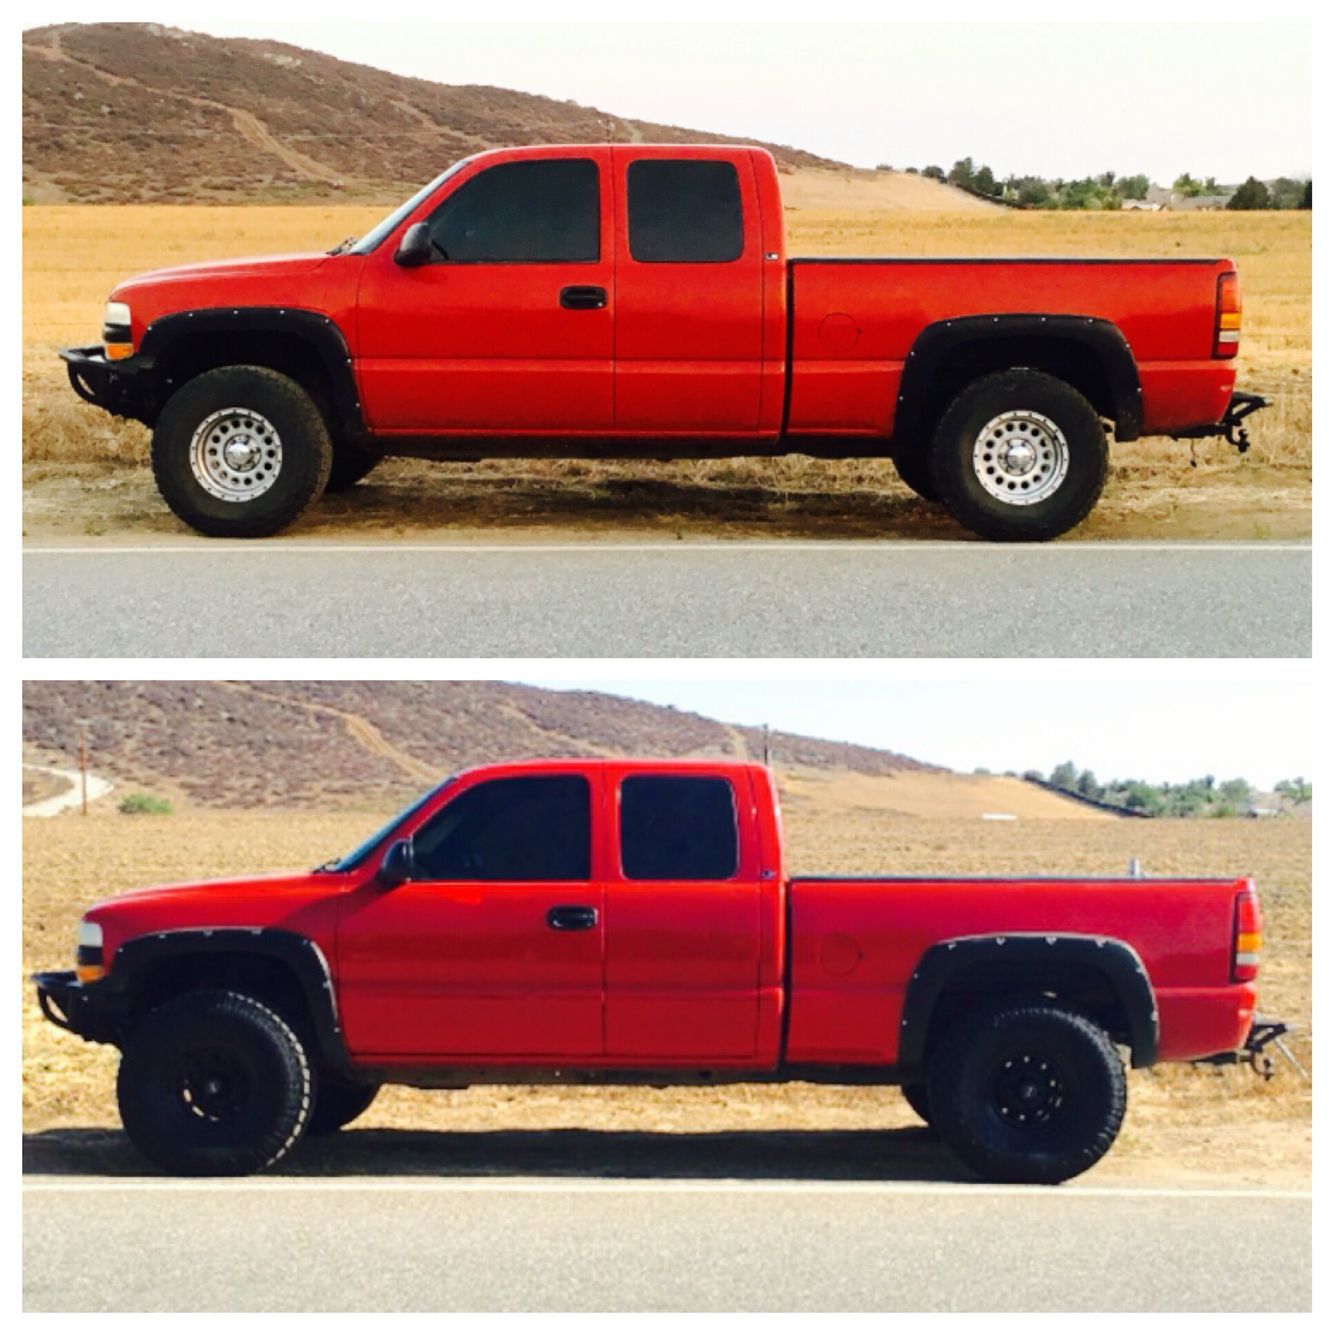 Top Is Bfg 33s On Eagle Alloys Bottom Is Open Country 35s